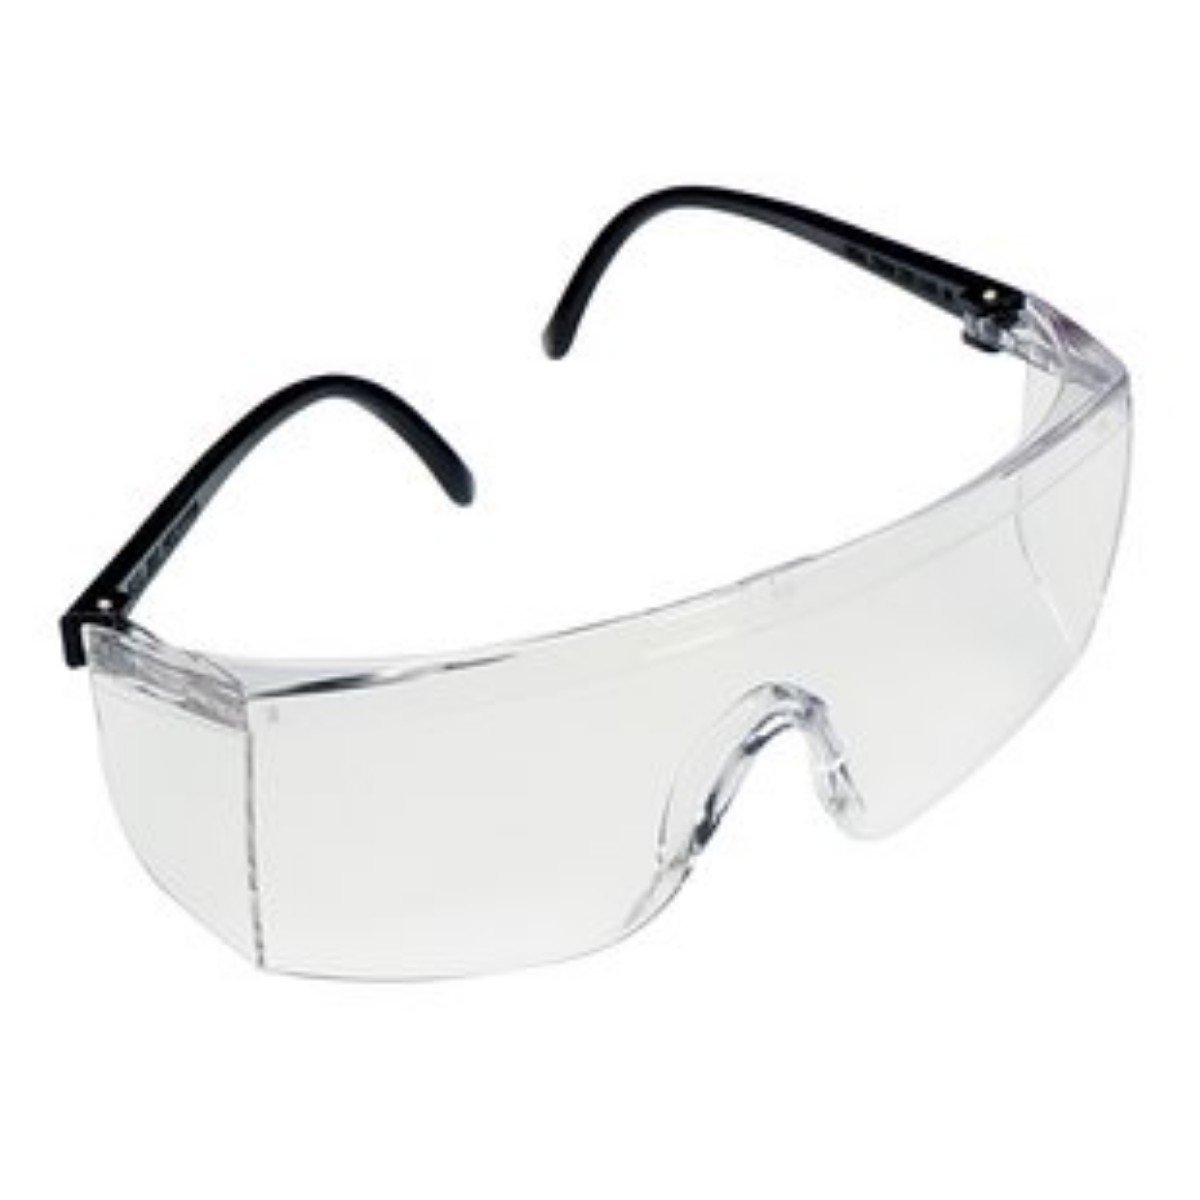 72b5a02b5 3M 1709IN Dust protection Bike Riding Safety Goggle (Pack of 2 ...